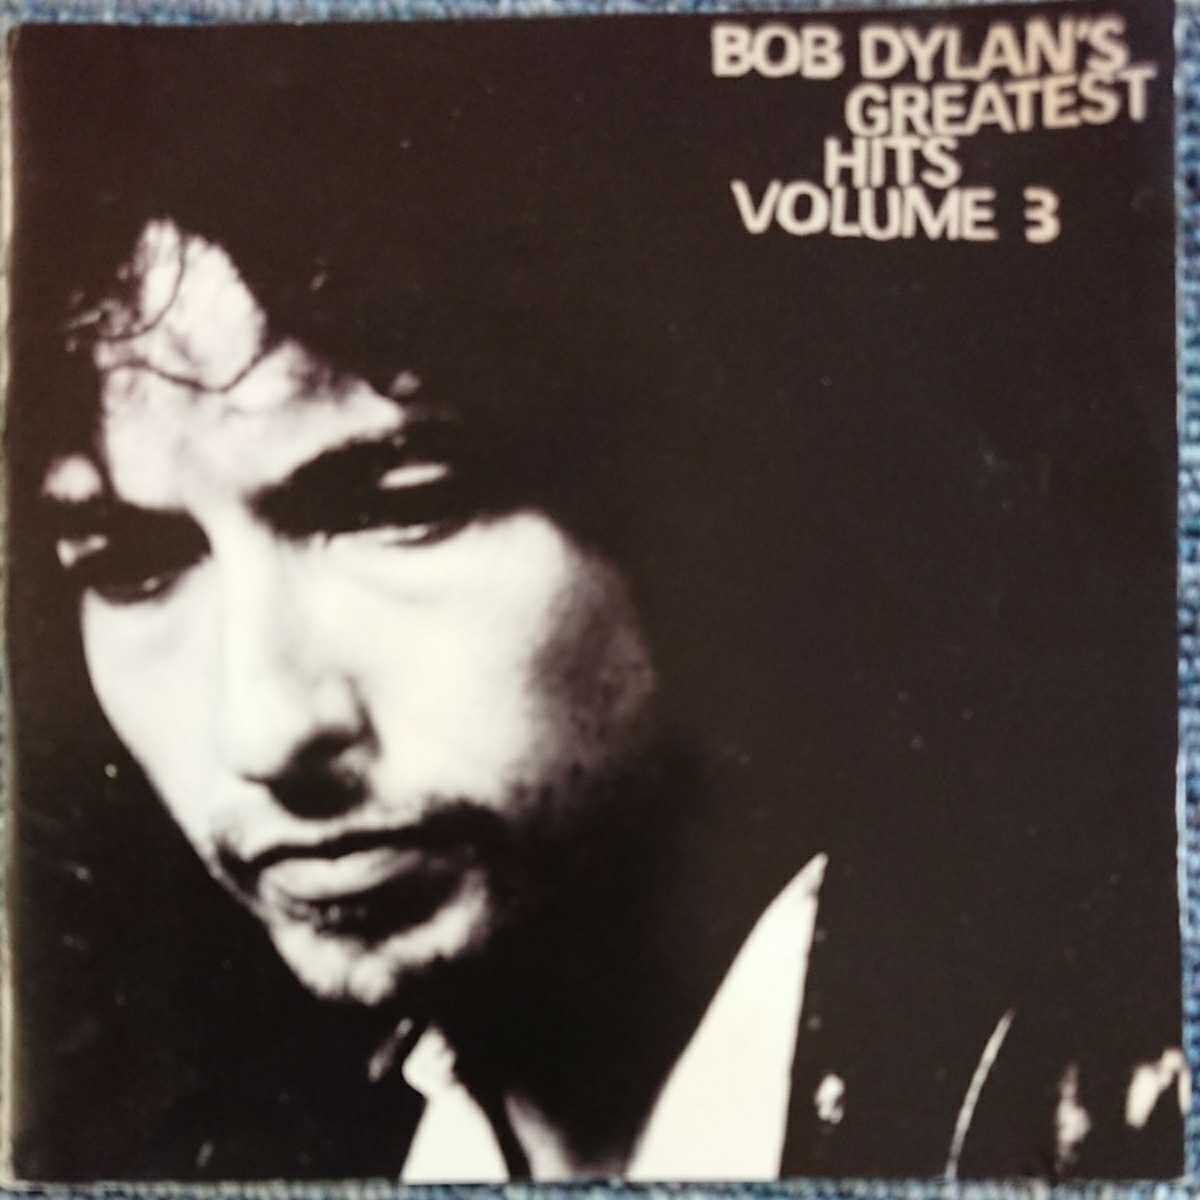 Bob dylan's Greatest Hits Volume 3_画像1